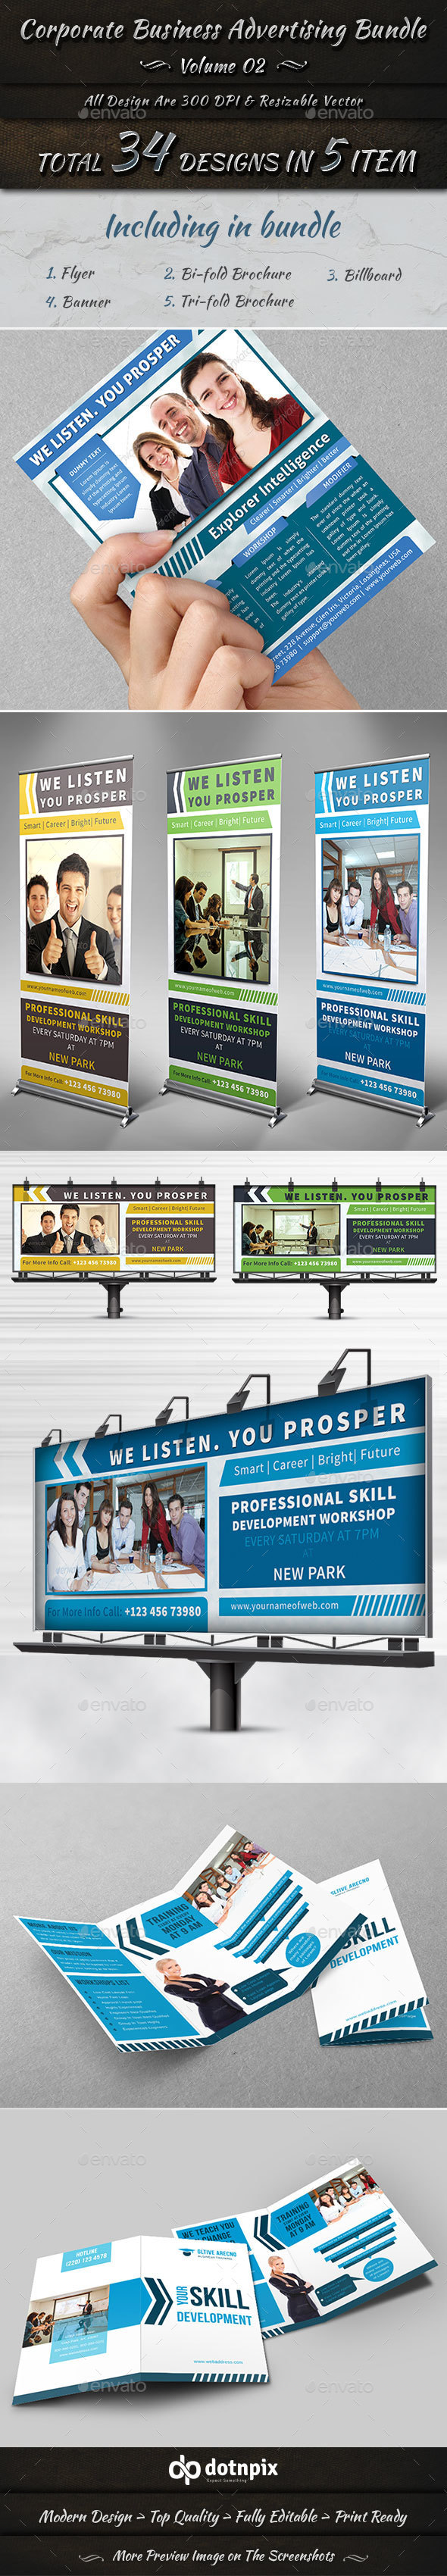 Corporate Business Advertising Bundle | Volume 2 - Corporate Flyers